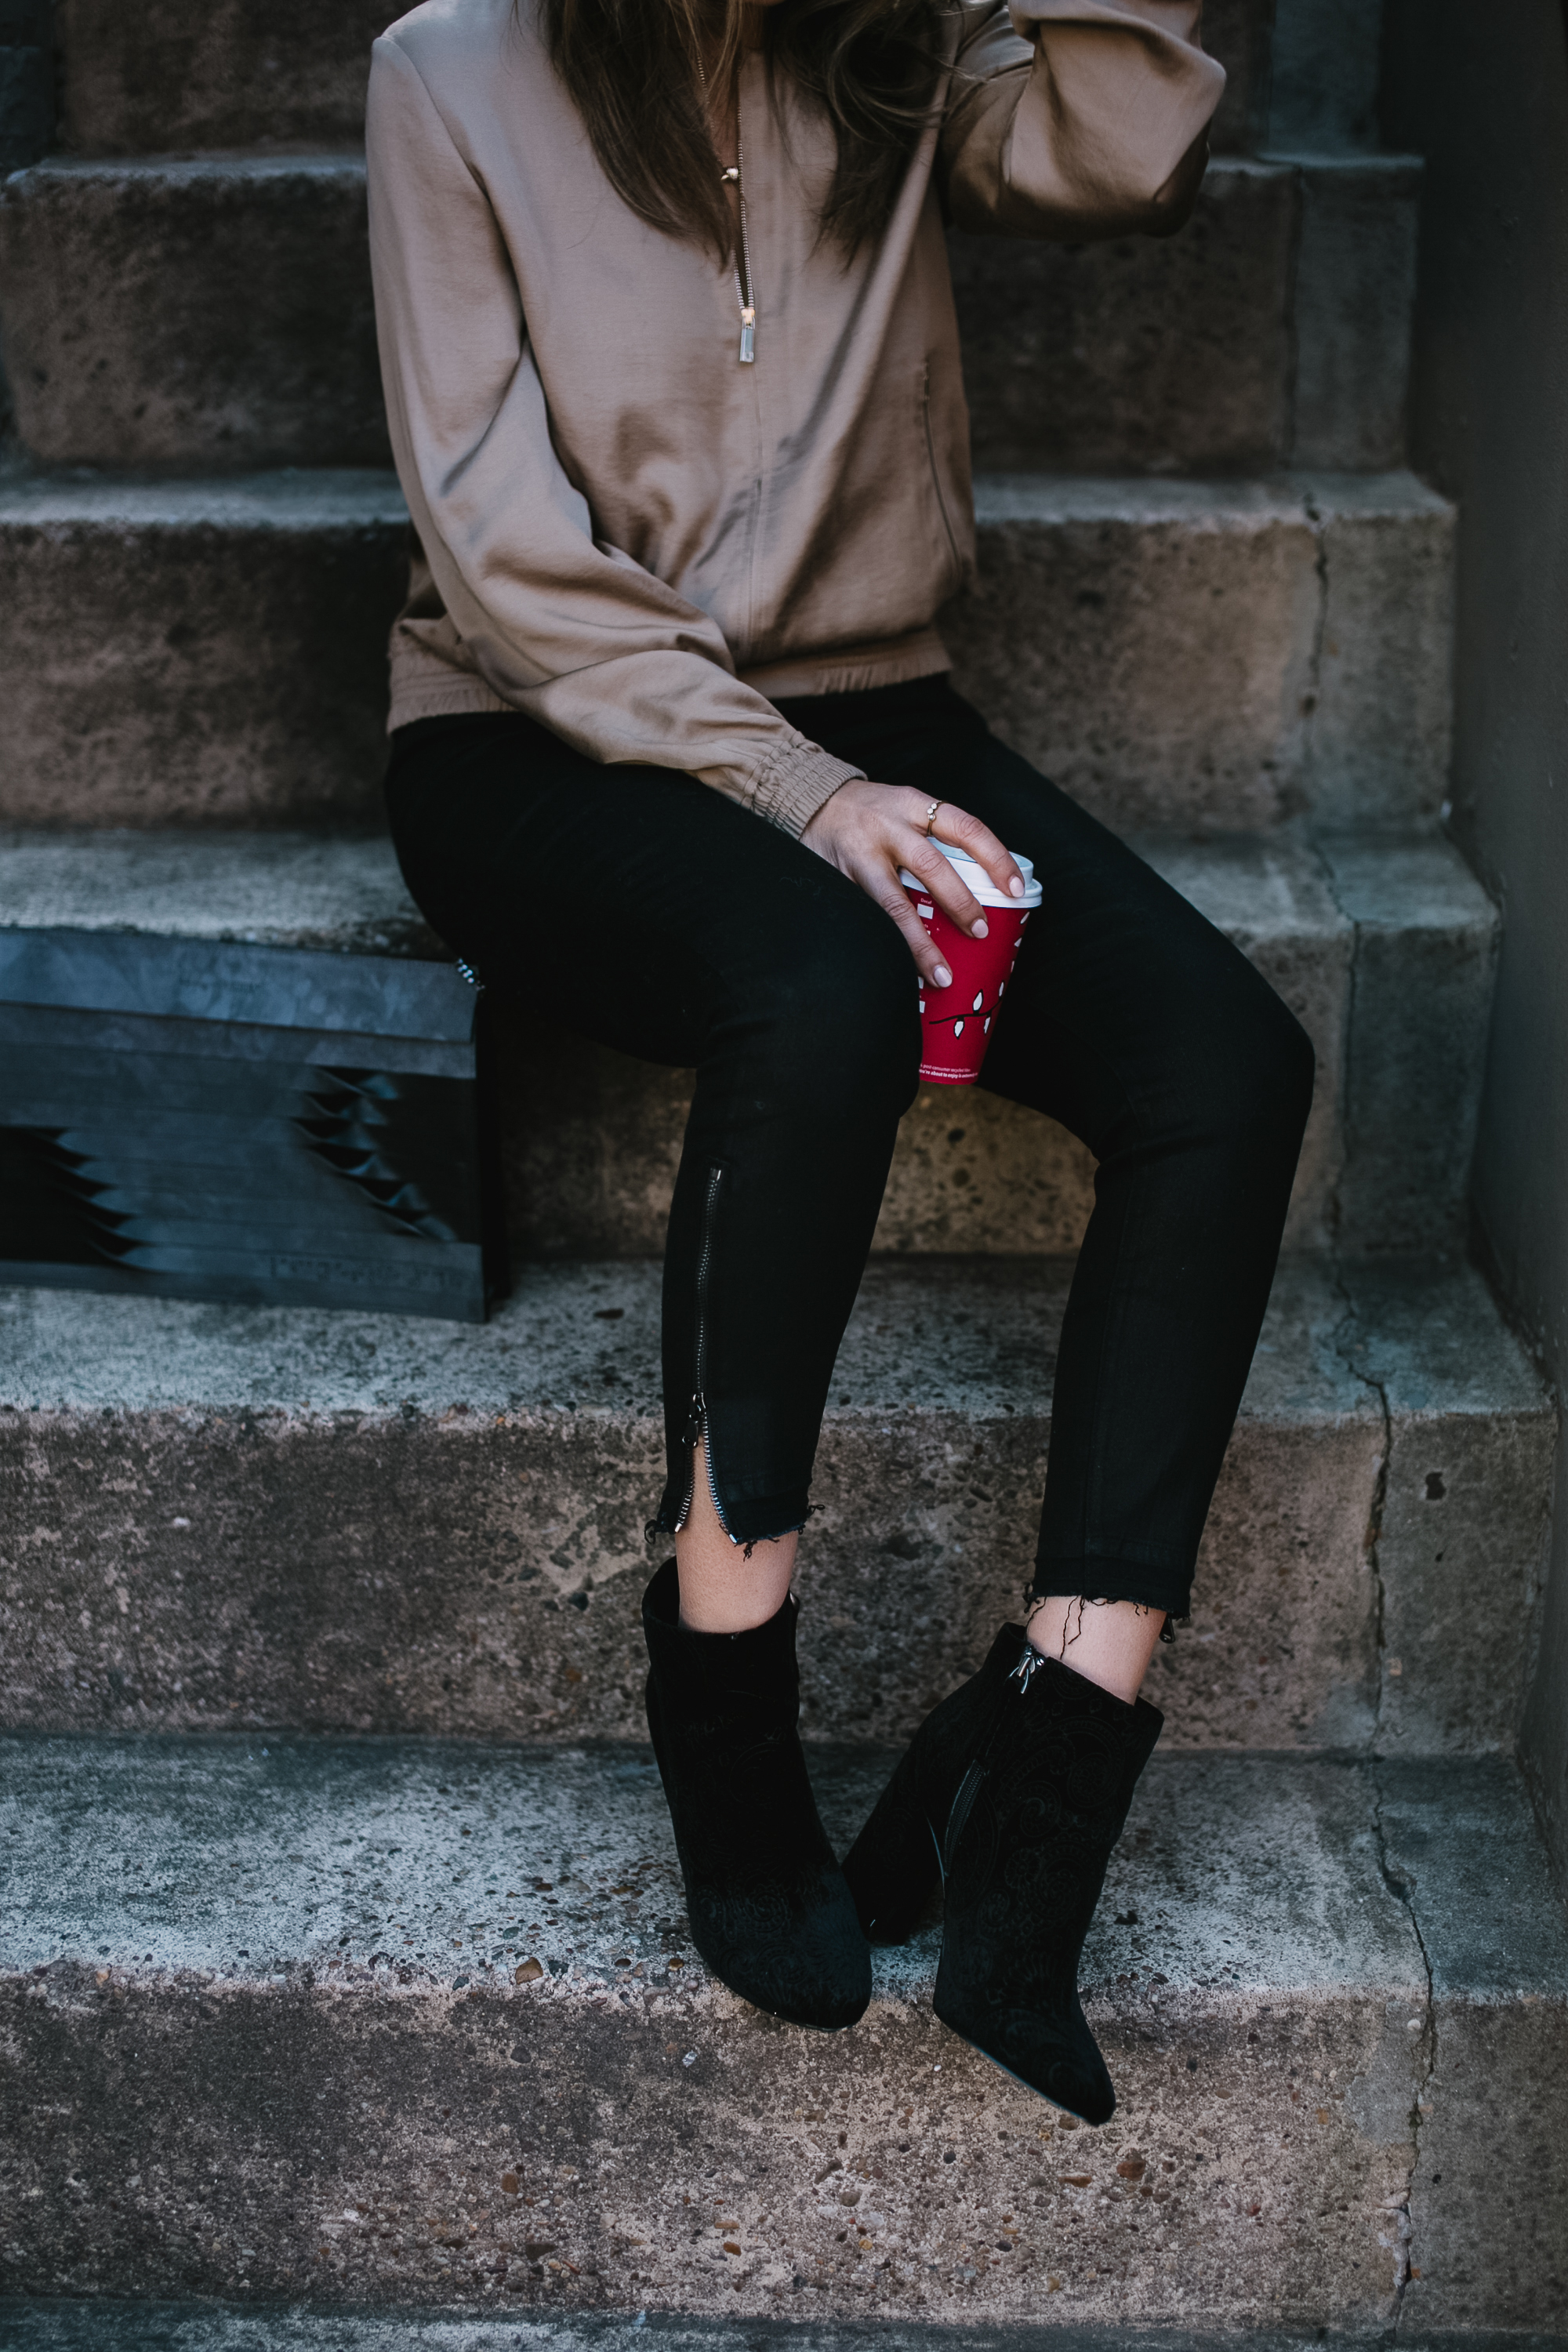 Blogger Sara Azani of Style MBA is photographed wearing Lafayette 148 New York Bryant satin bomber jacket, Quay Australia black oversize sunglasses, J Brand Coated Skinny Jeans, Target paisley booties, and limited edition ITA for Lafayette 148 New York Shantou Pouchette purse. Petite brunette woman wearing simple neutral outfit holding a small coffee while sitting in an outdoor stairwell.